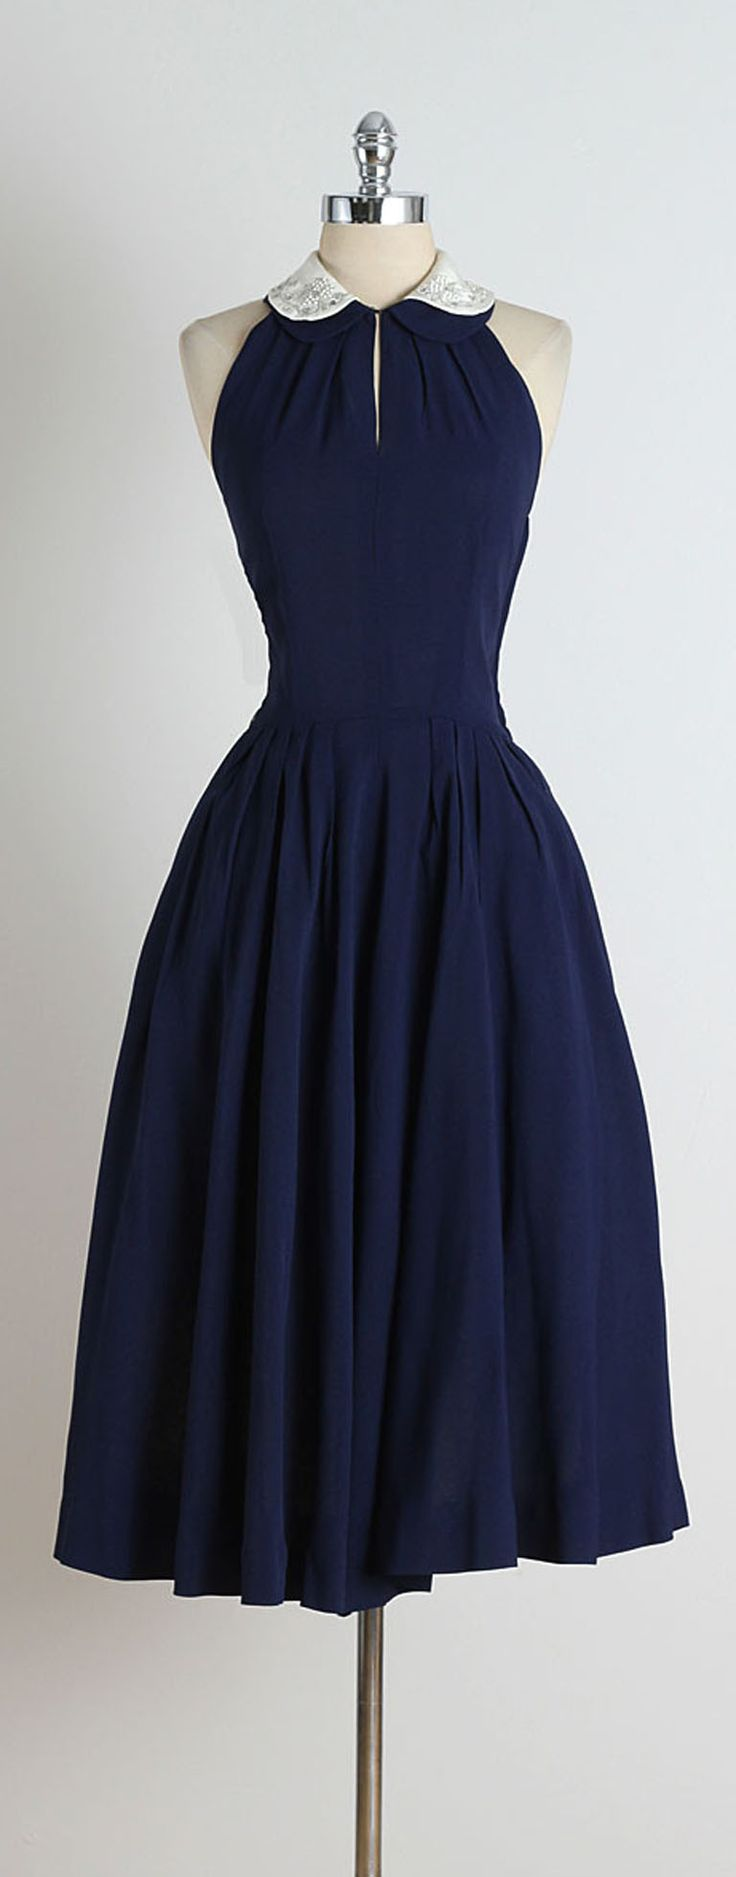 day dresses 1950s blue jeweled collar halter dress NPKKLVY